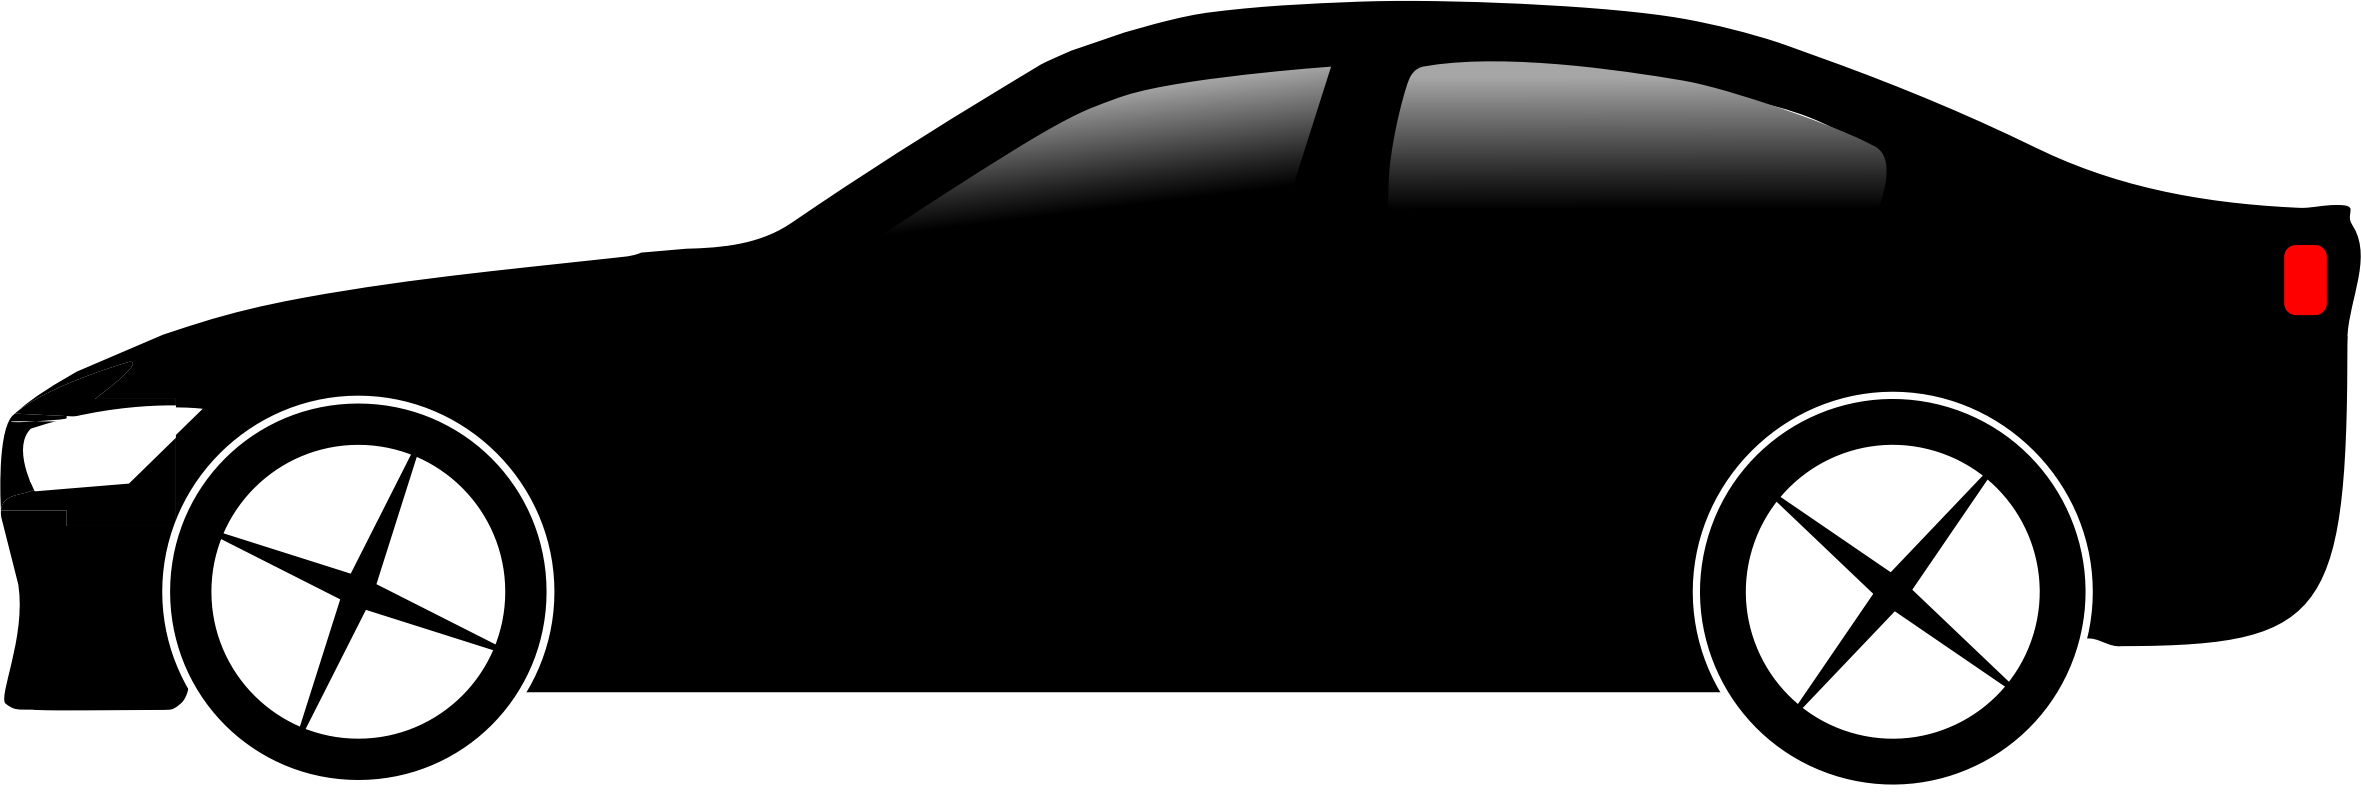 2361x792 Black Car Vector Image